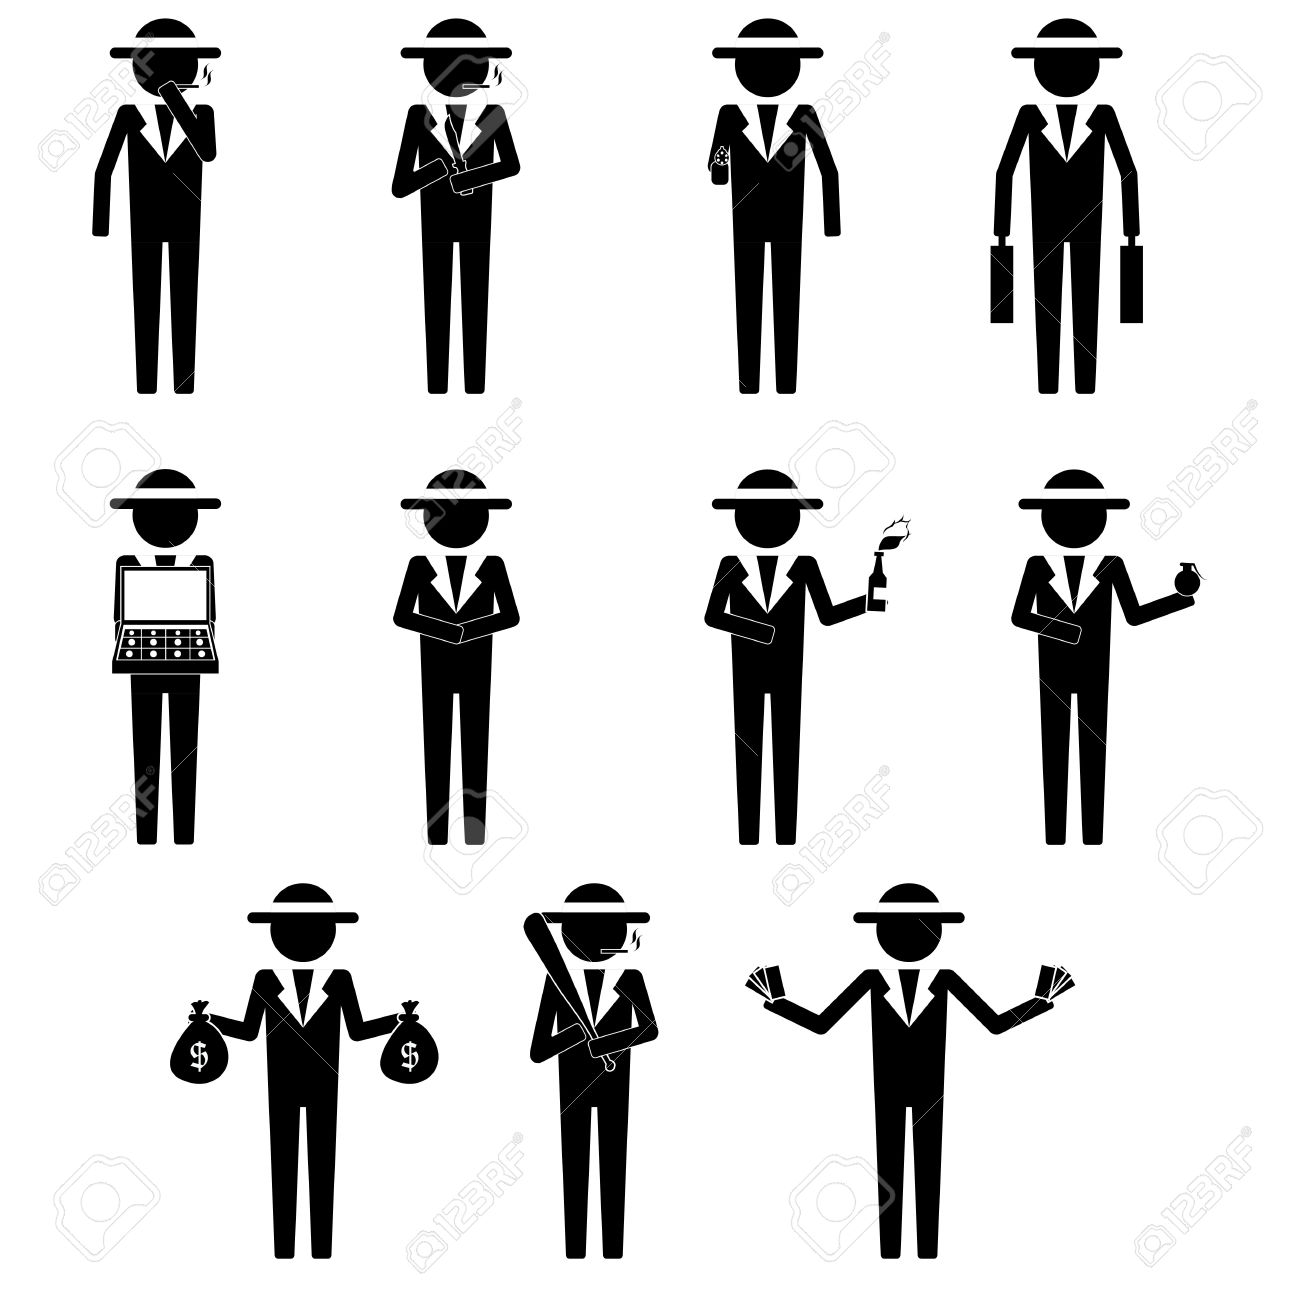 Syndicate clipart.